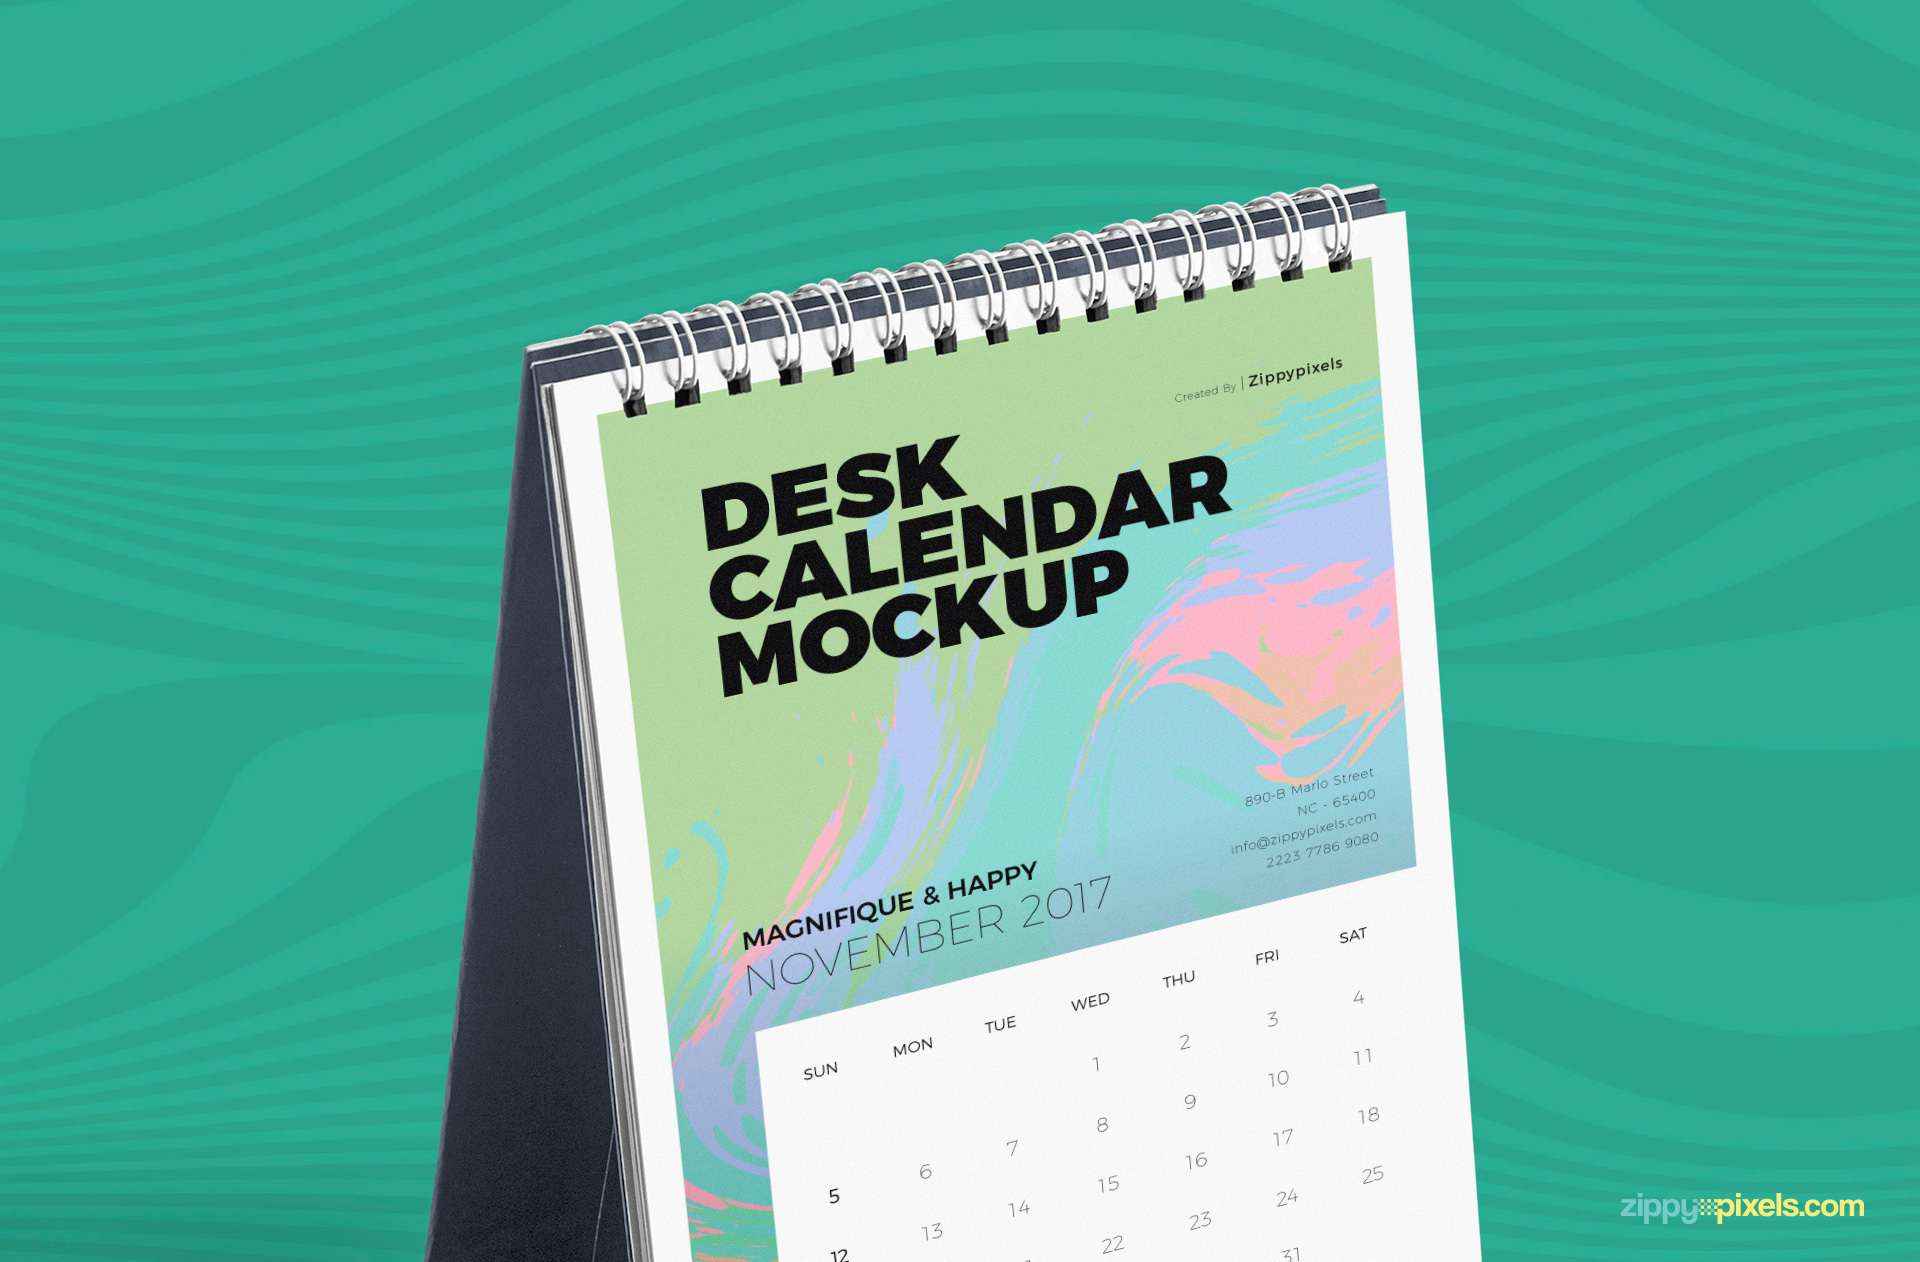 You can customize the front design of this table calendar mockup.